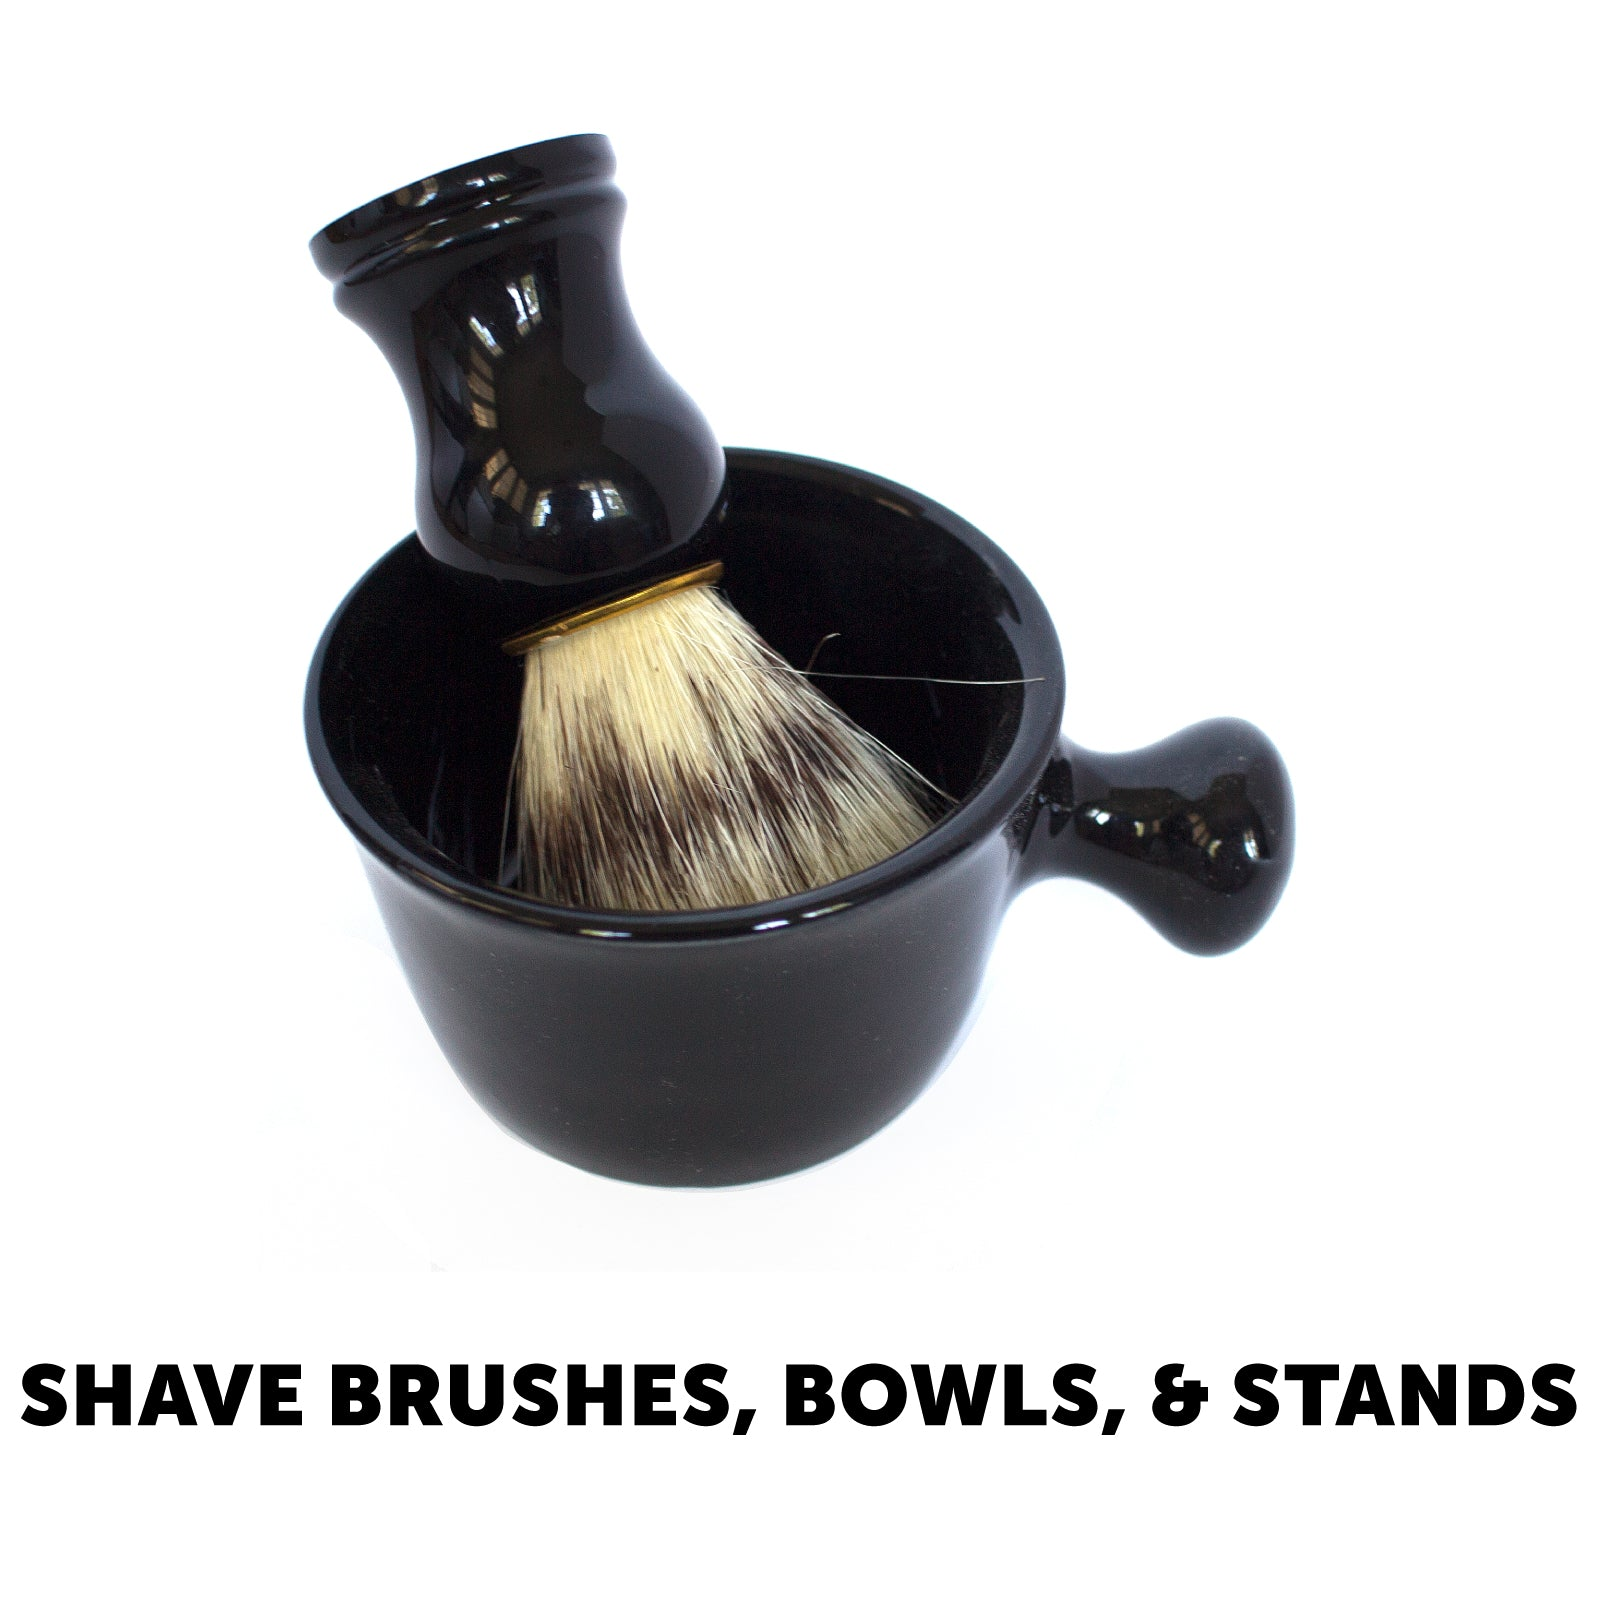 Shaving Accessories for Men